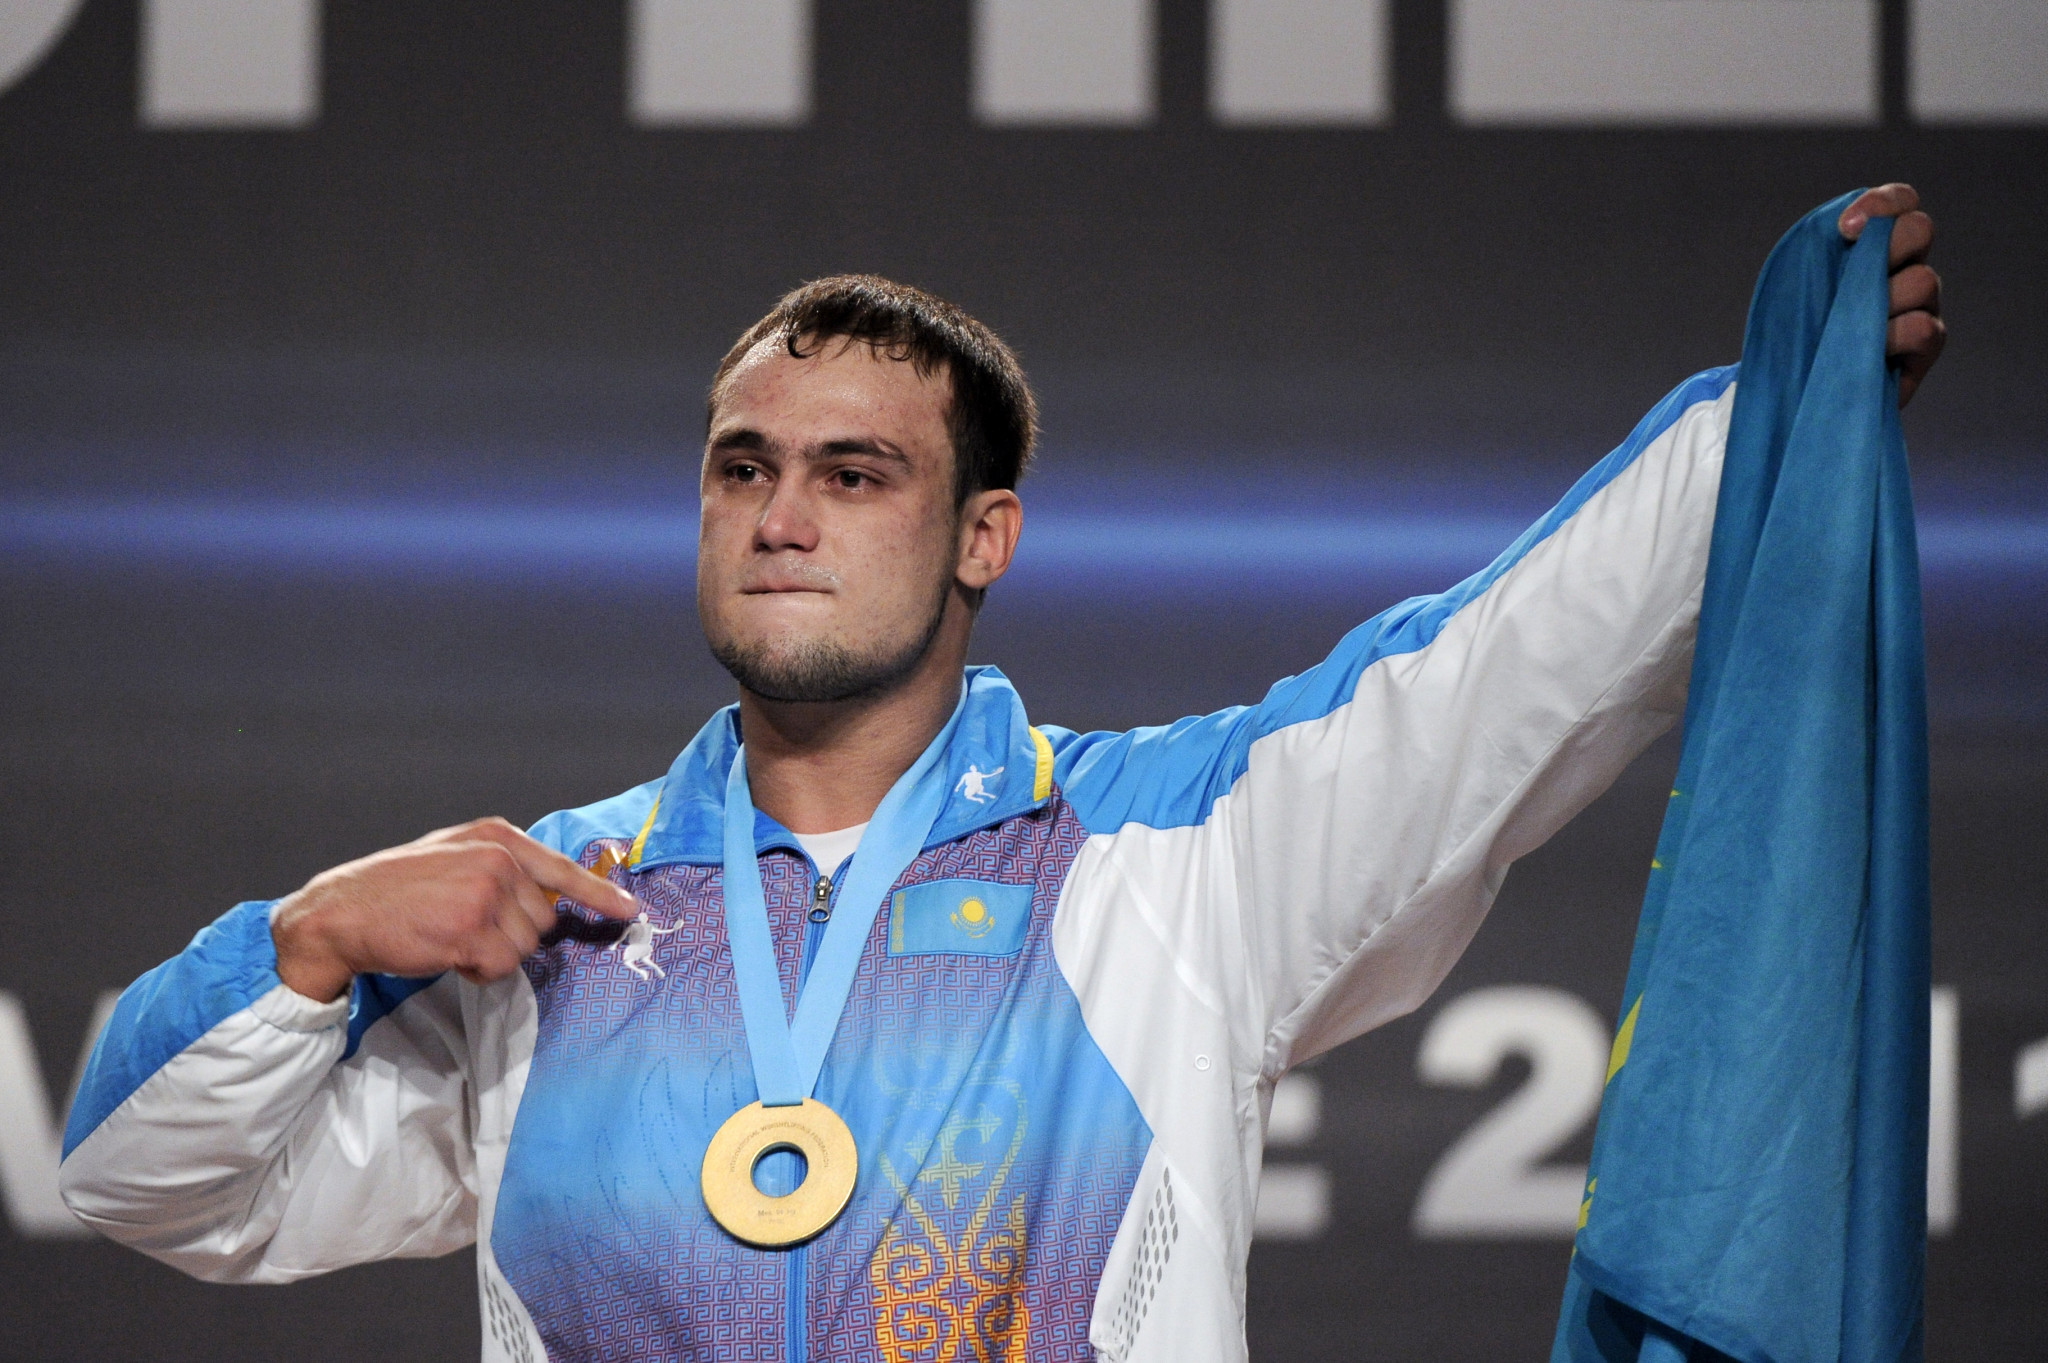 Nijat Rahimov is currently Kazakhstan's leading male lifter in Olympic qualifying ©Getty Images